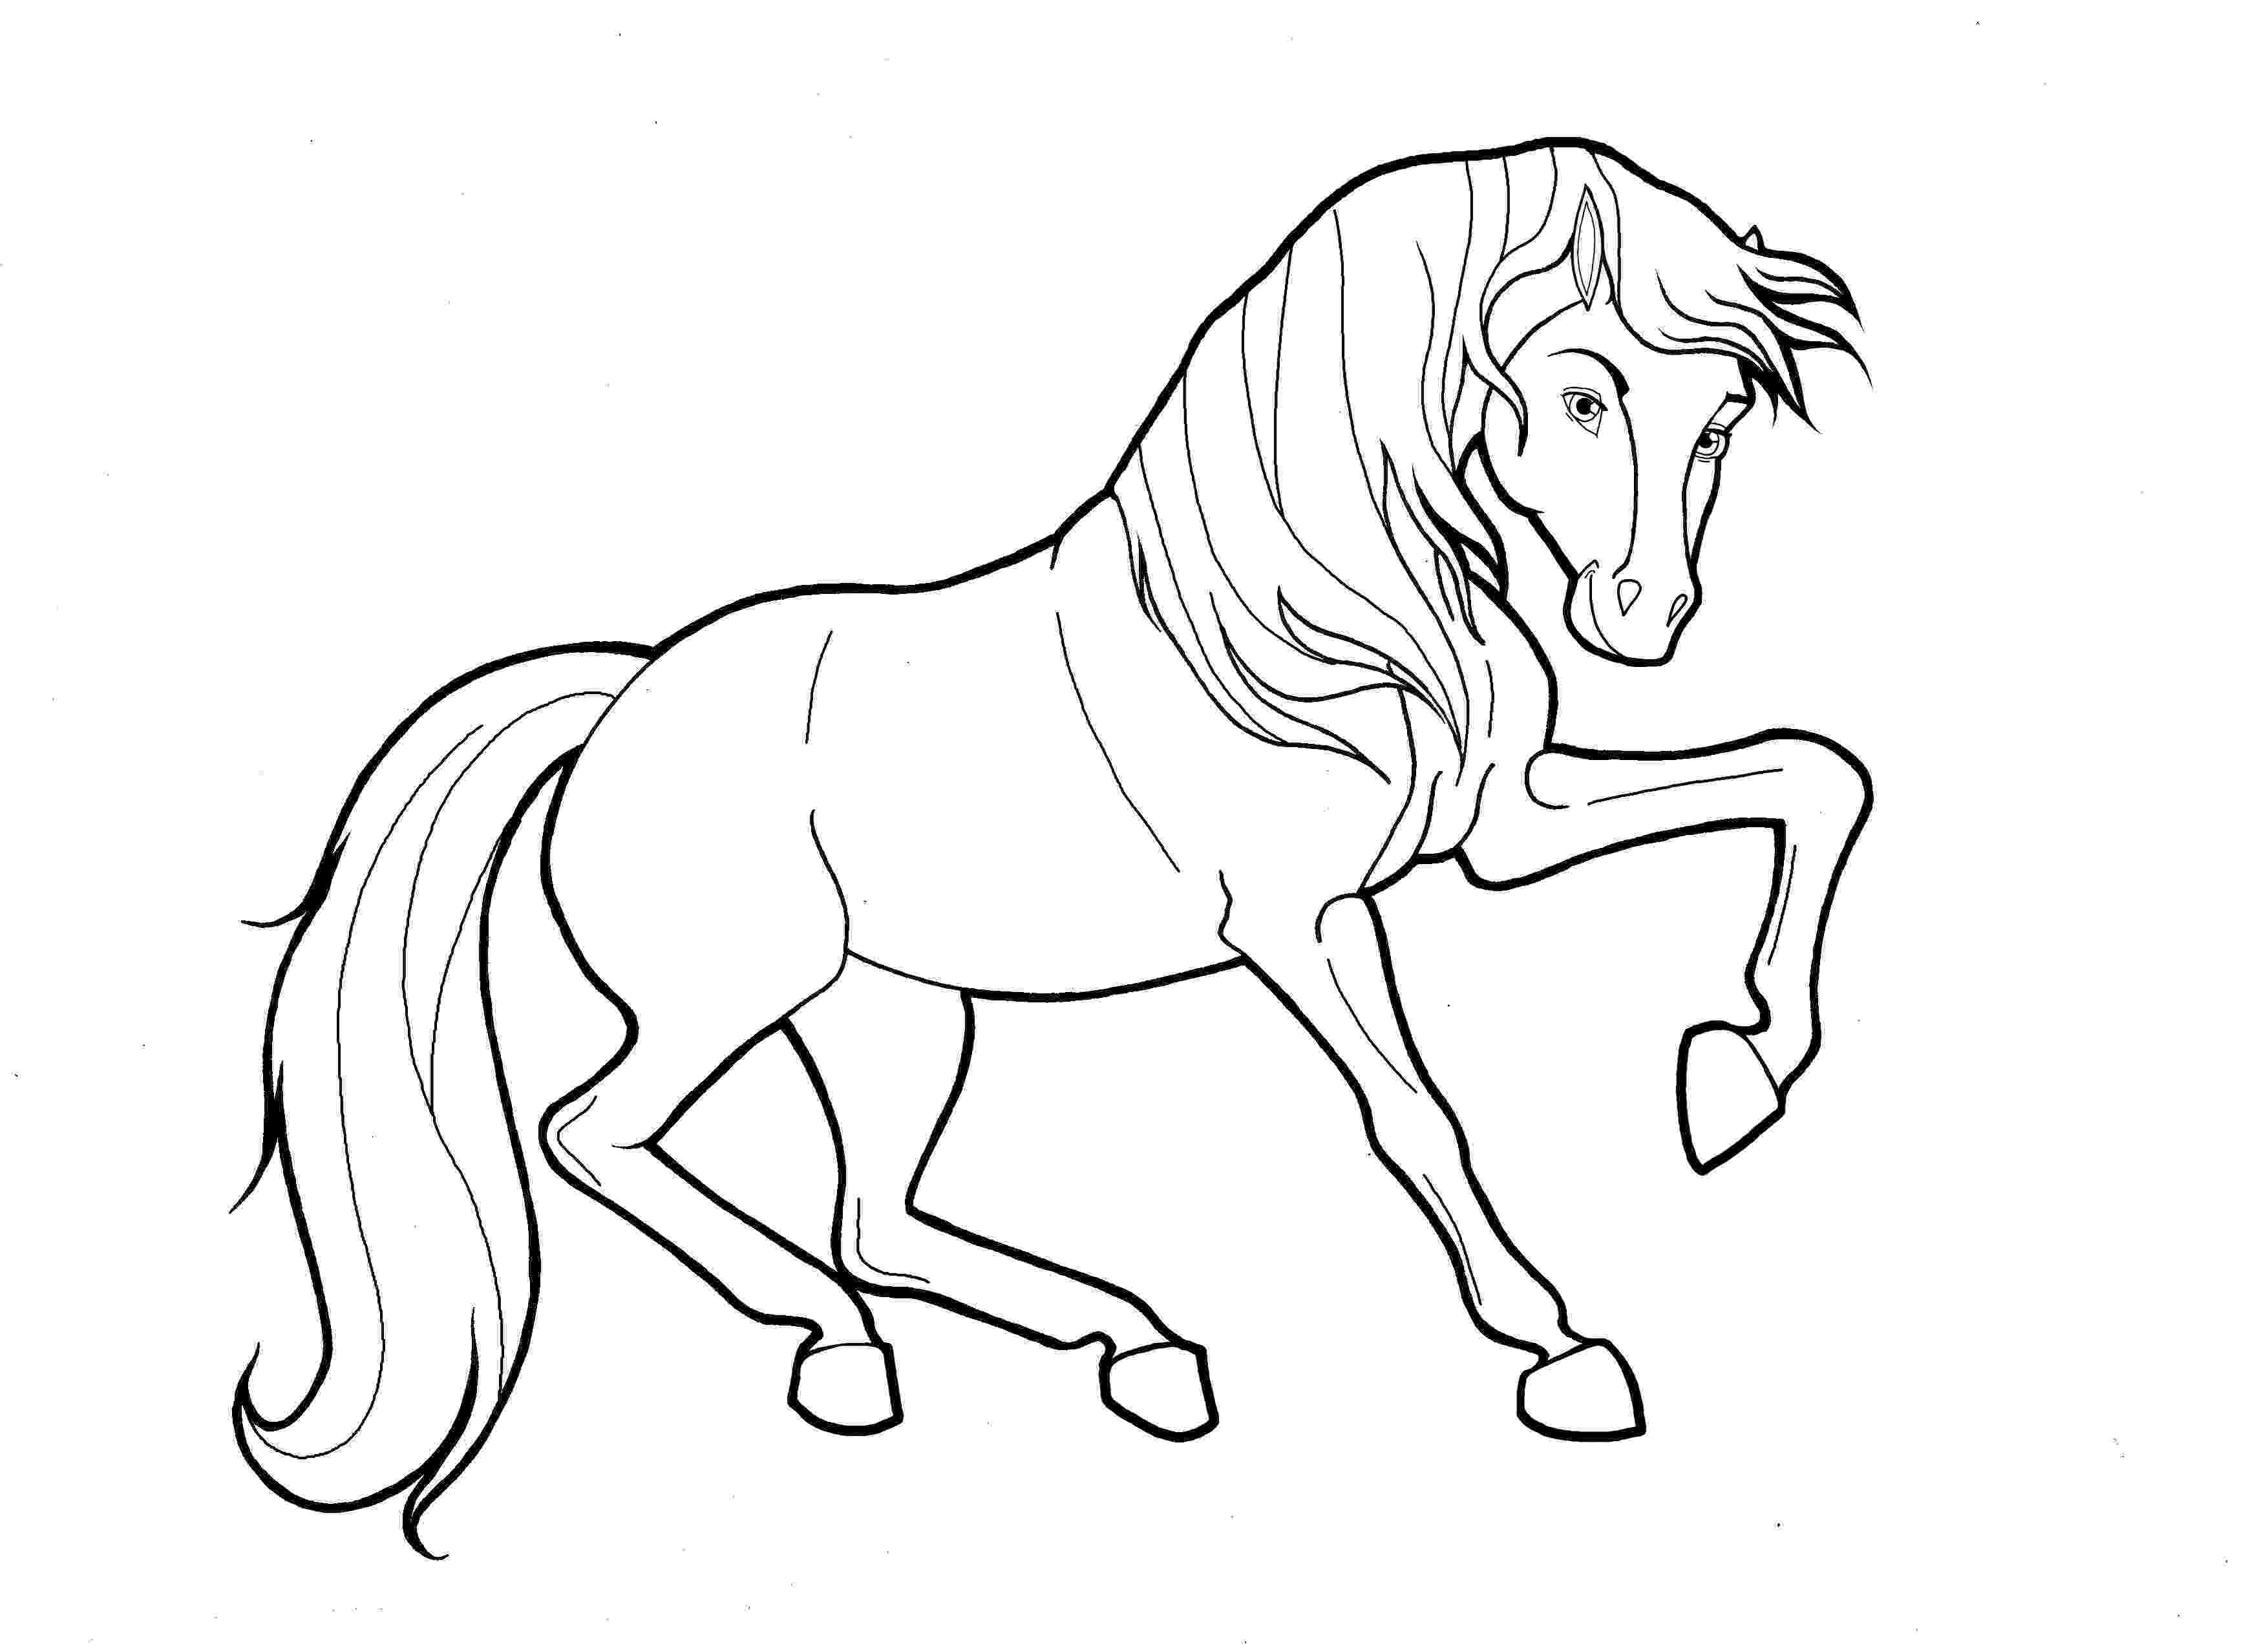 colouring horse free horse coloring pages colouring horse